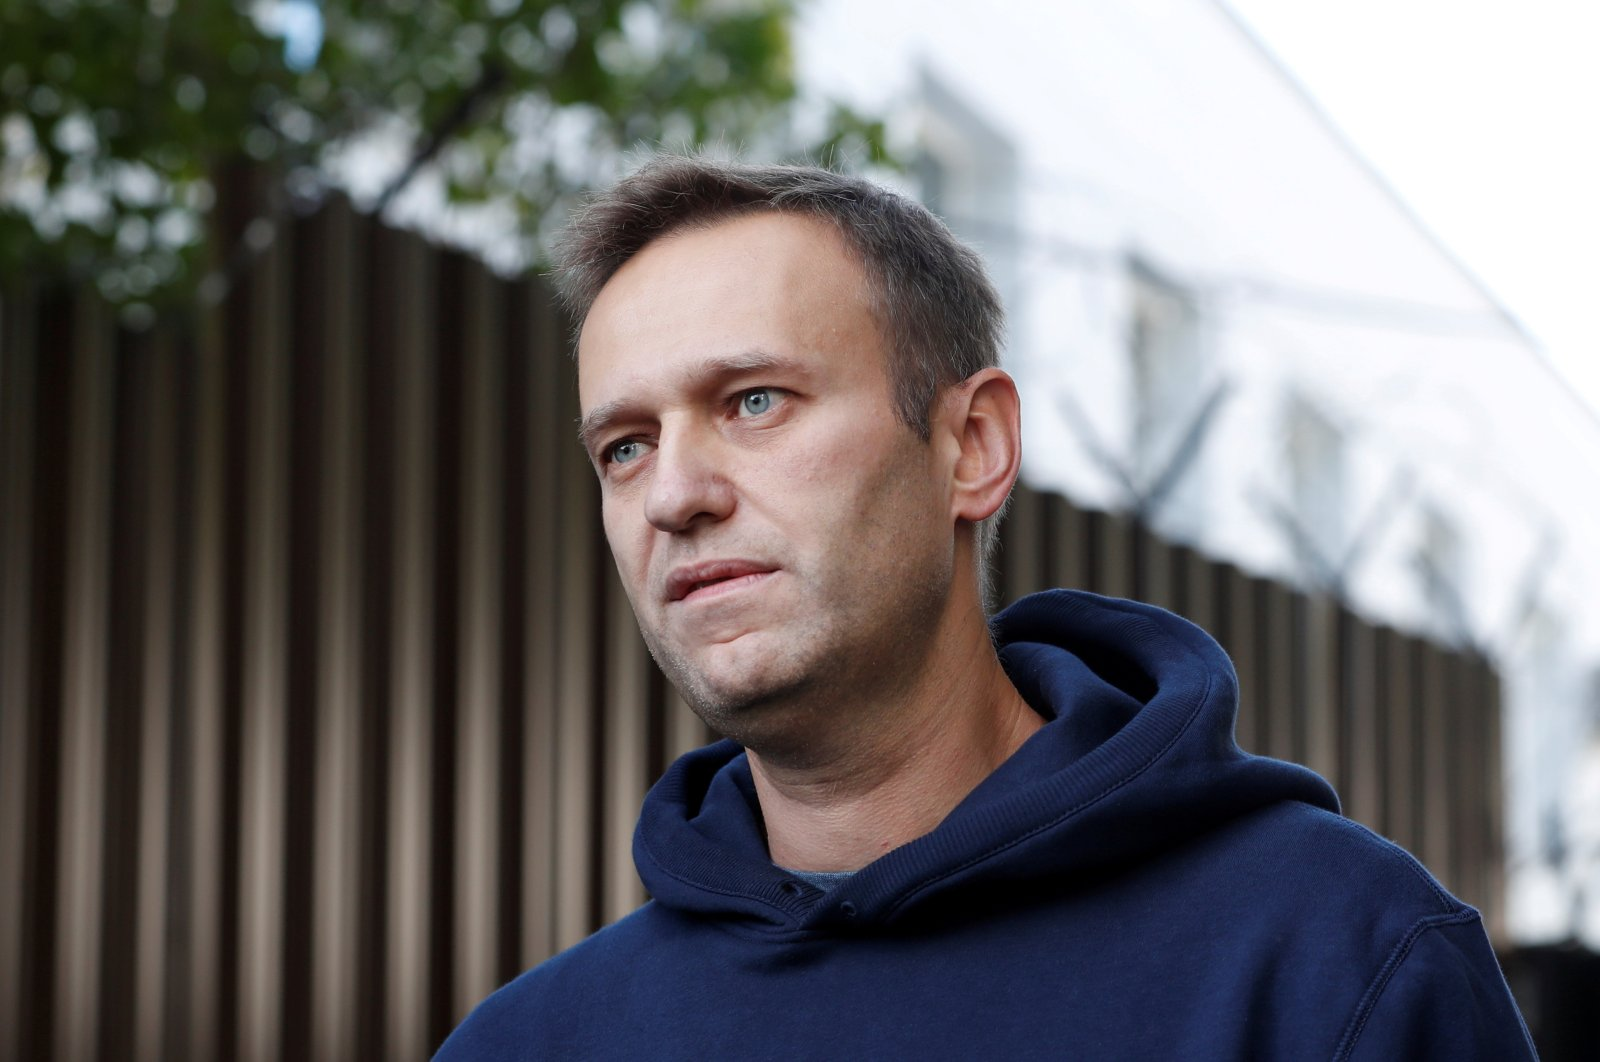 Russian opposition figure Alexei Navalny speaks with journalists after being released from a detention center in Moscow, Aug. 23, 2019. (Reuters Photo)